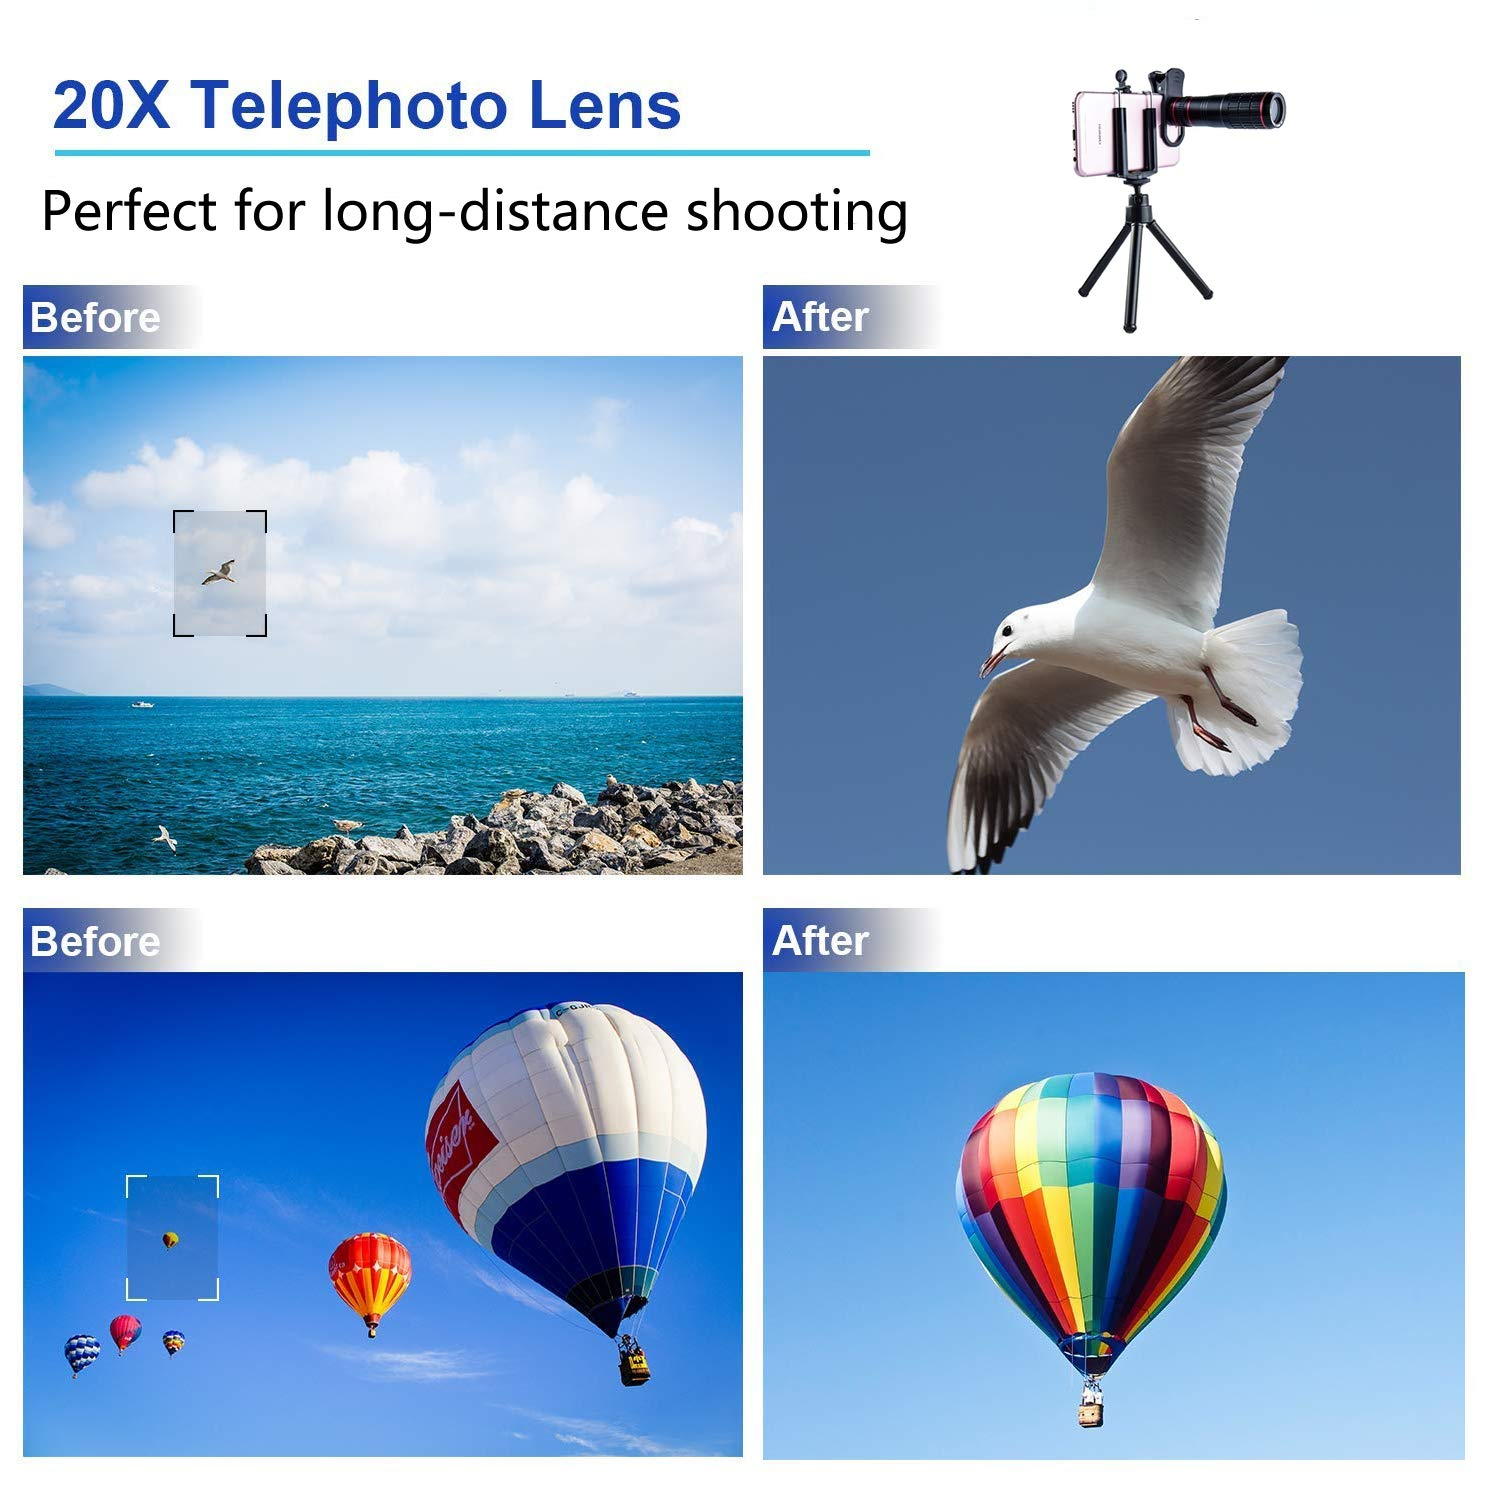 DDcafor Universal Smartphone Telephoto Camera Lens Kit Compatible with Android iPhone Series 20x Focus 15x Macro /& 180/° Fisheye Lens Adjustable Clip HD Night Shot